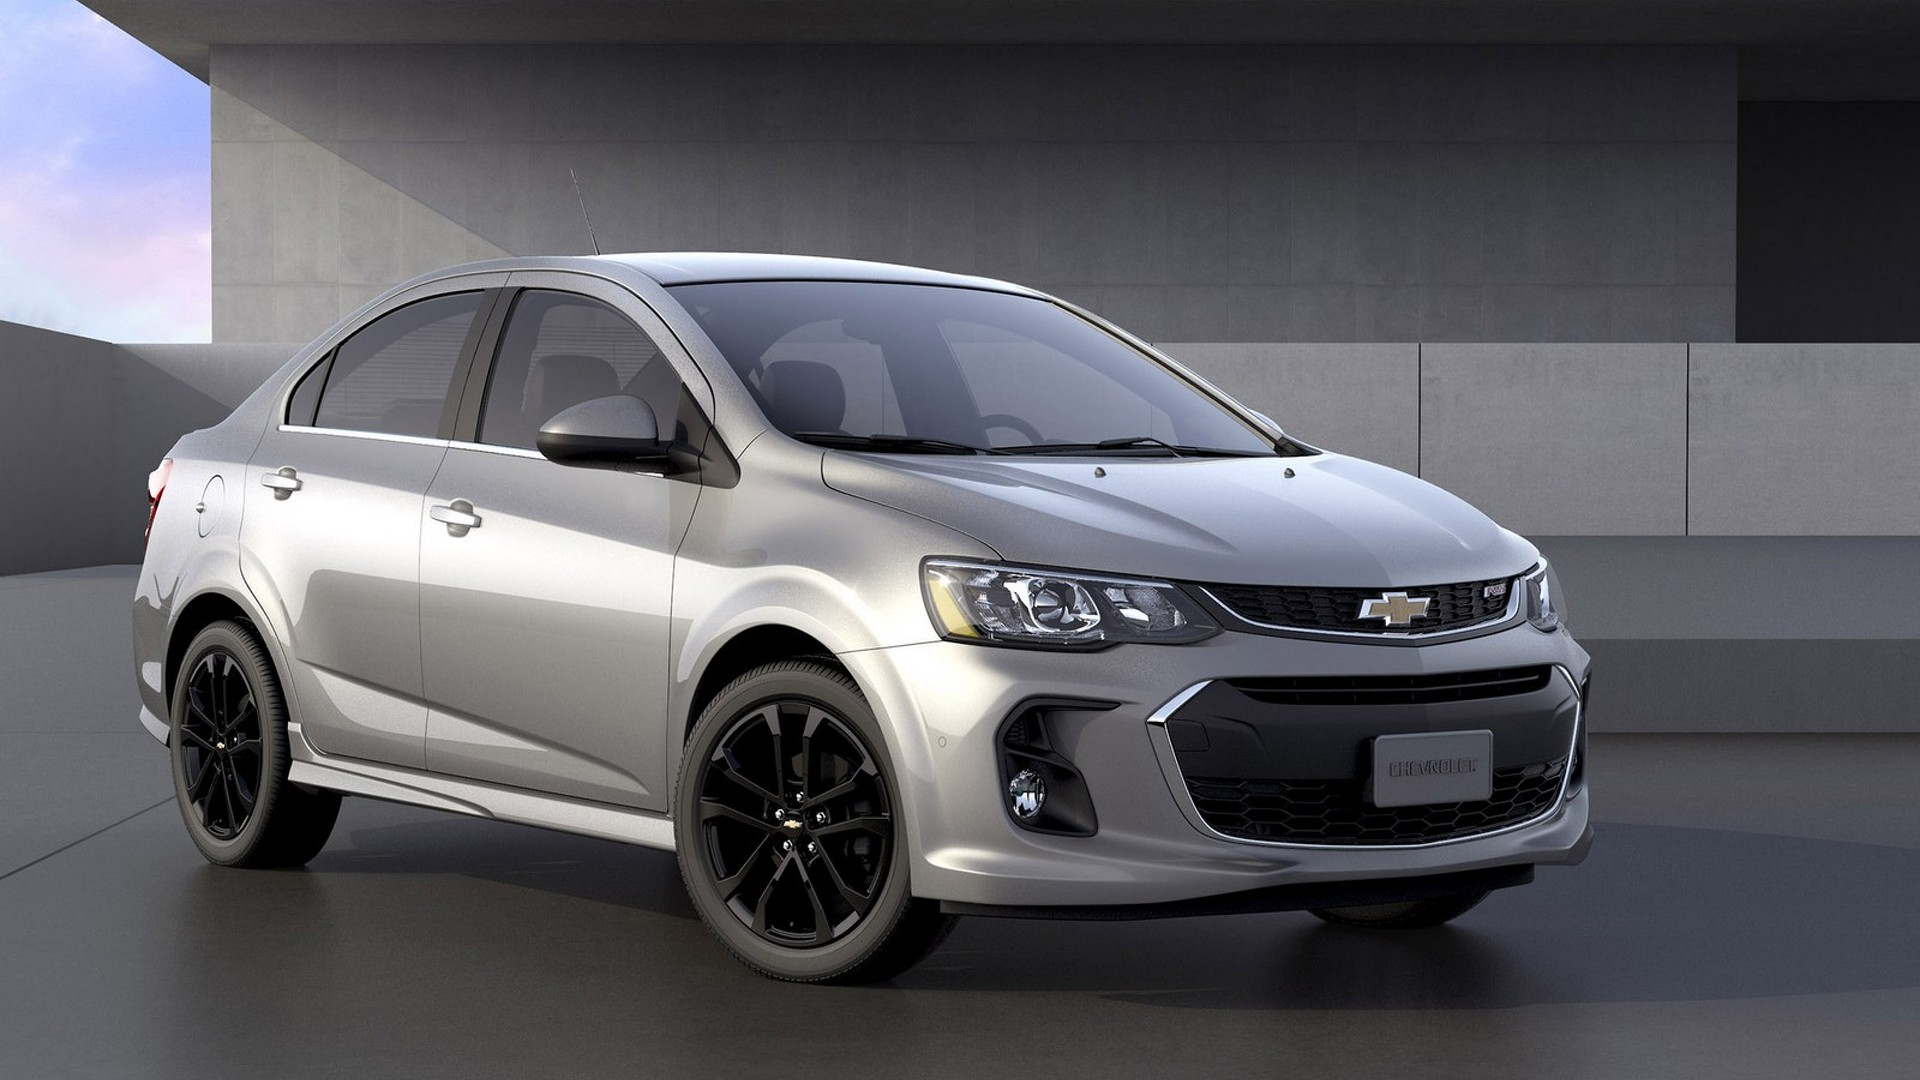 2017 chevy sonic facelift unveiled for new york. Black Bedroom Furniture Sets. Home Design Ideas